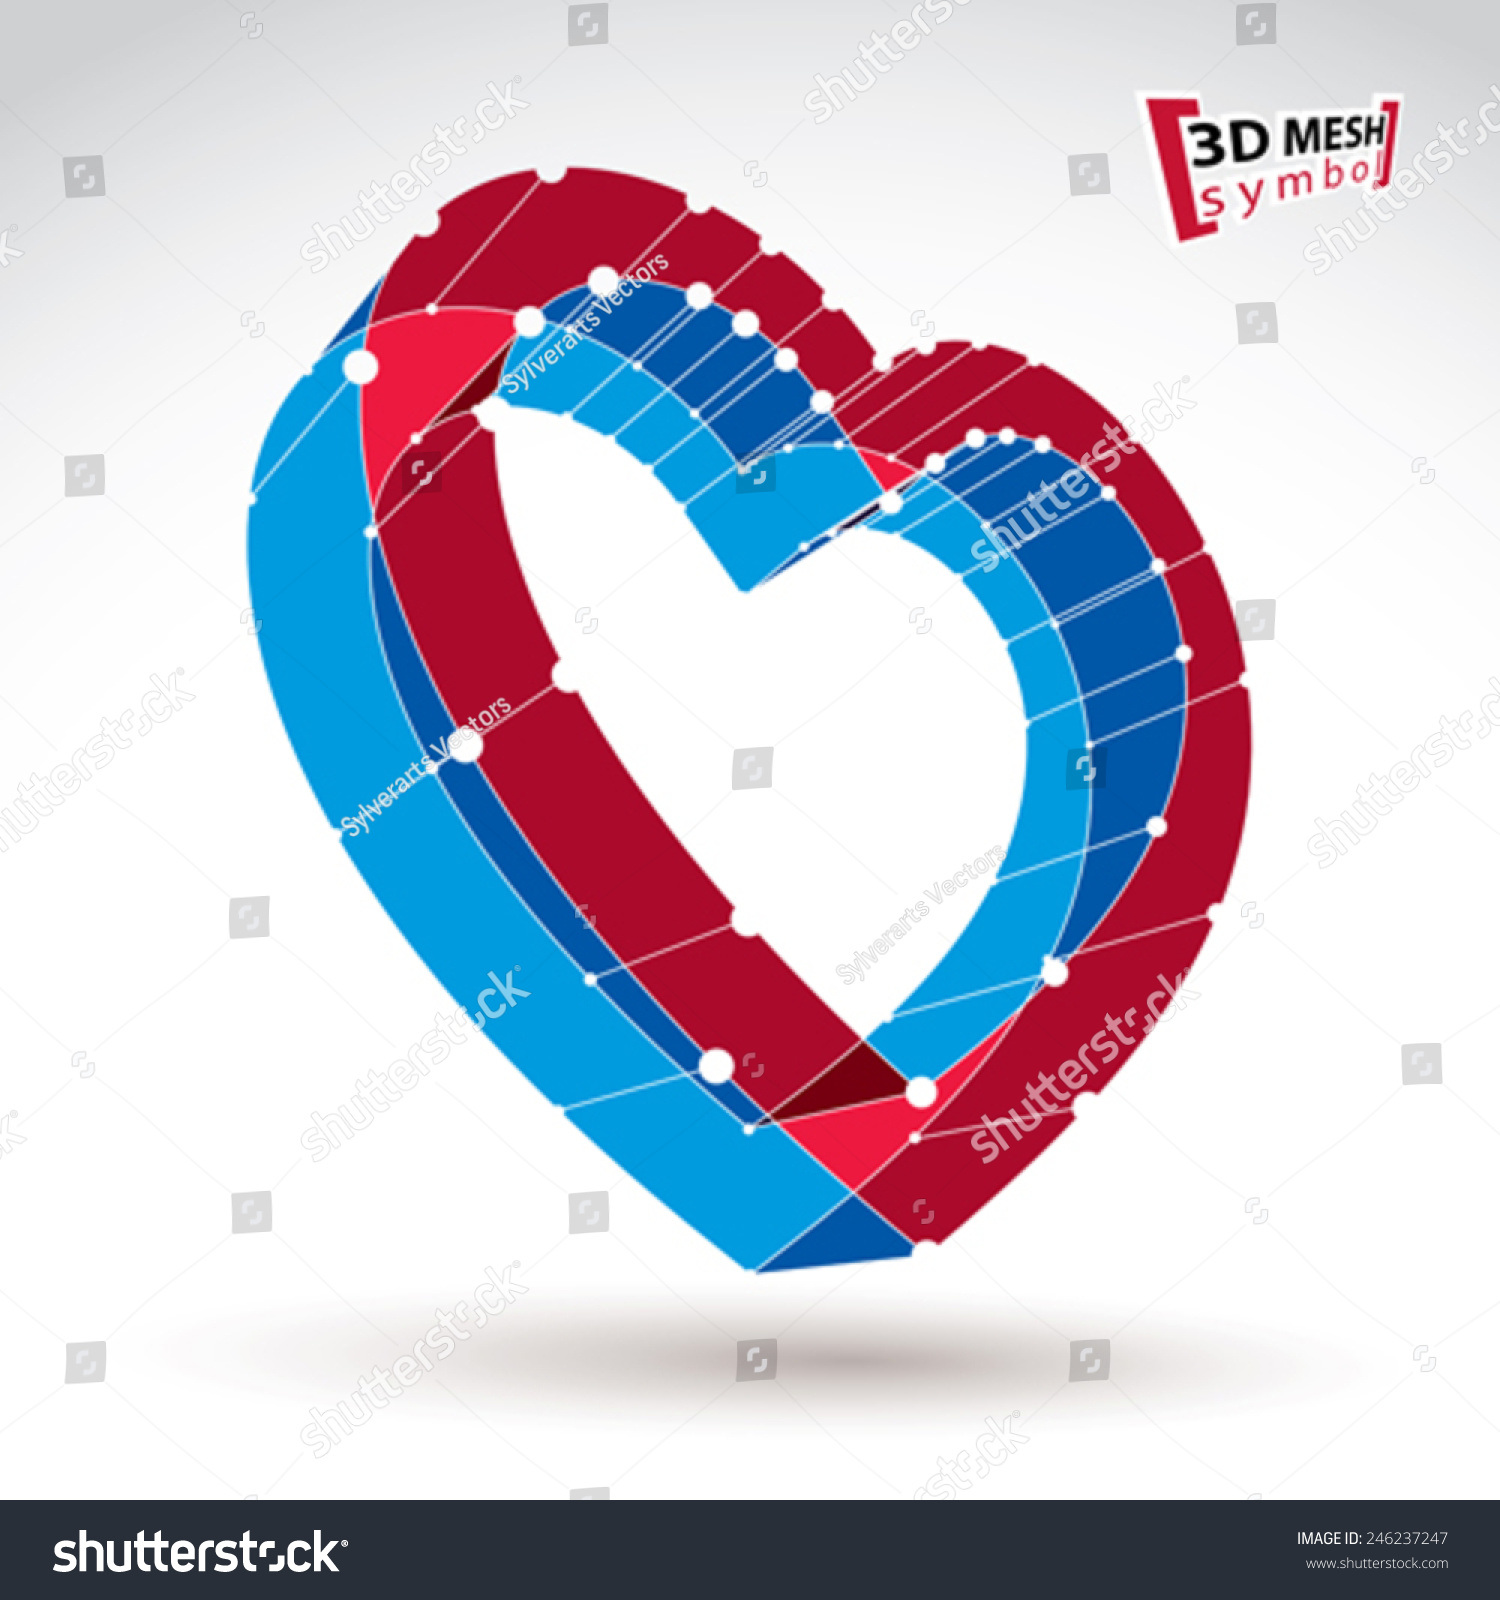 3 D Mesh Stylish Web Red Love Stock Vector Royalty Free 246237247